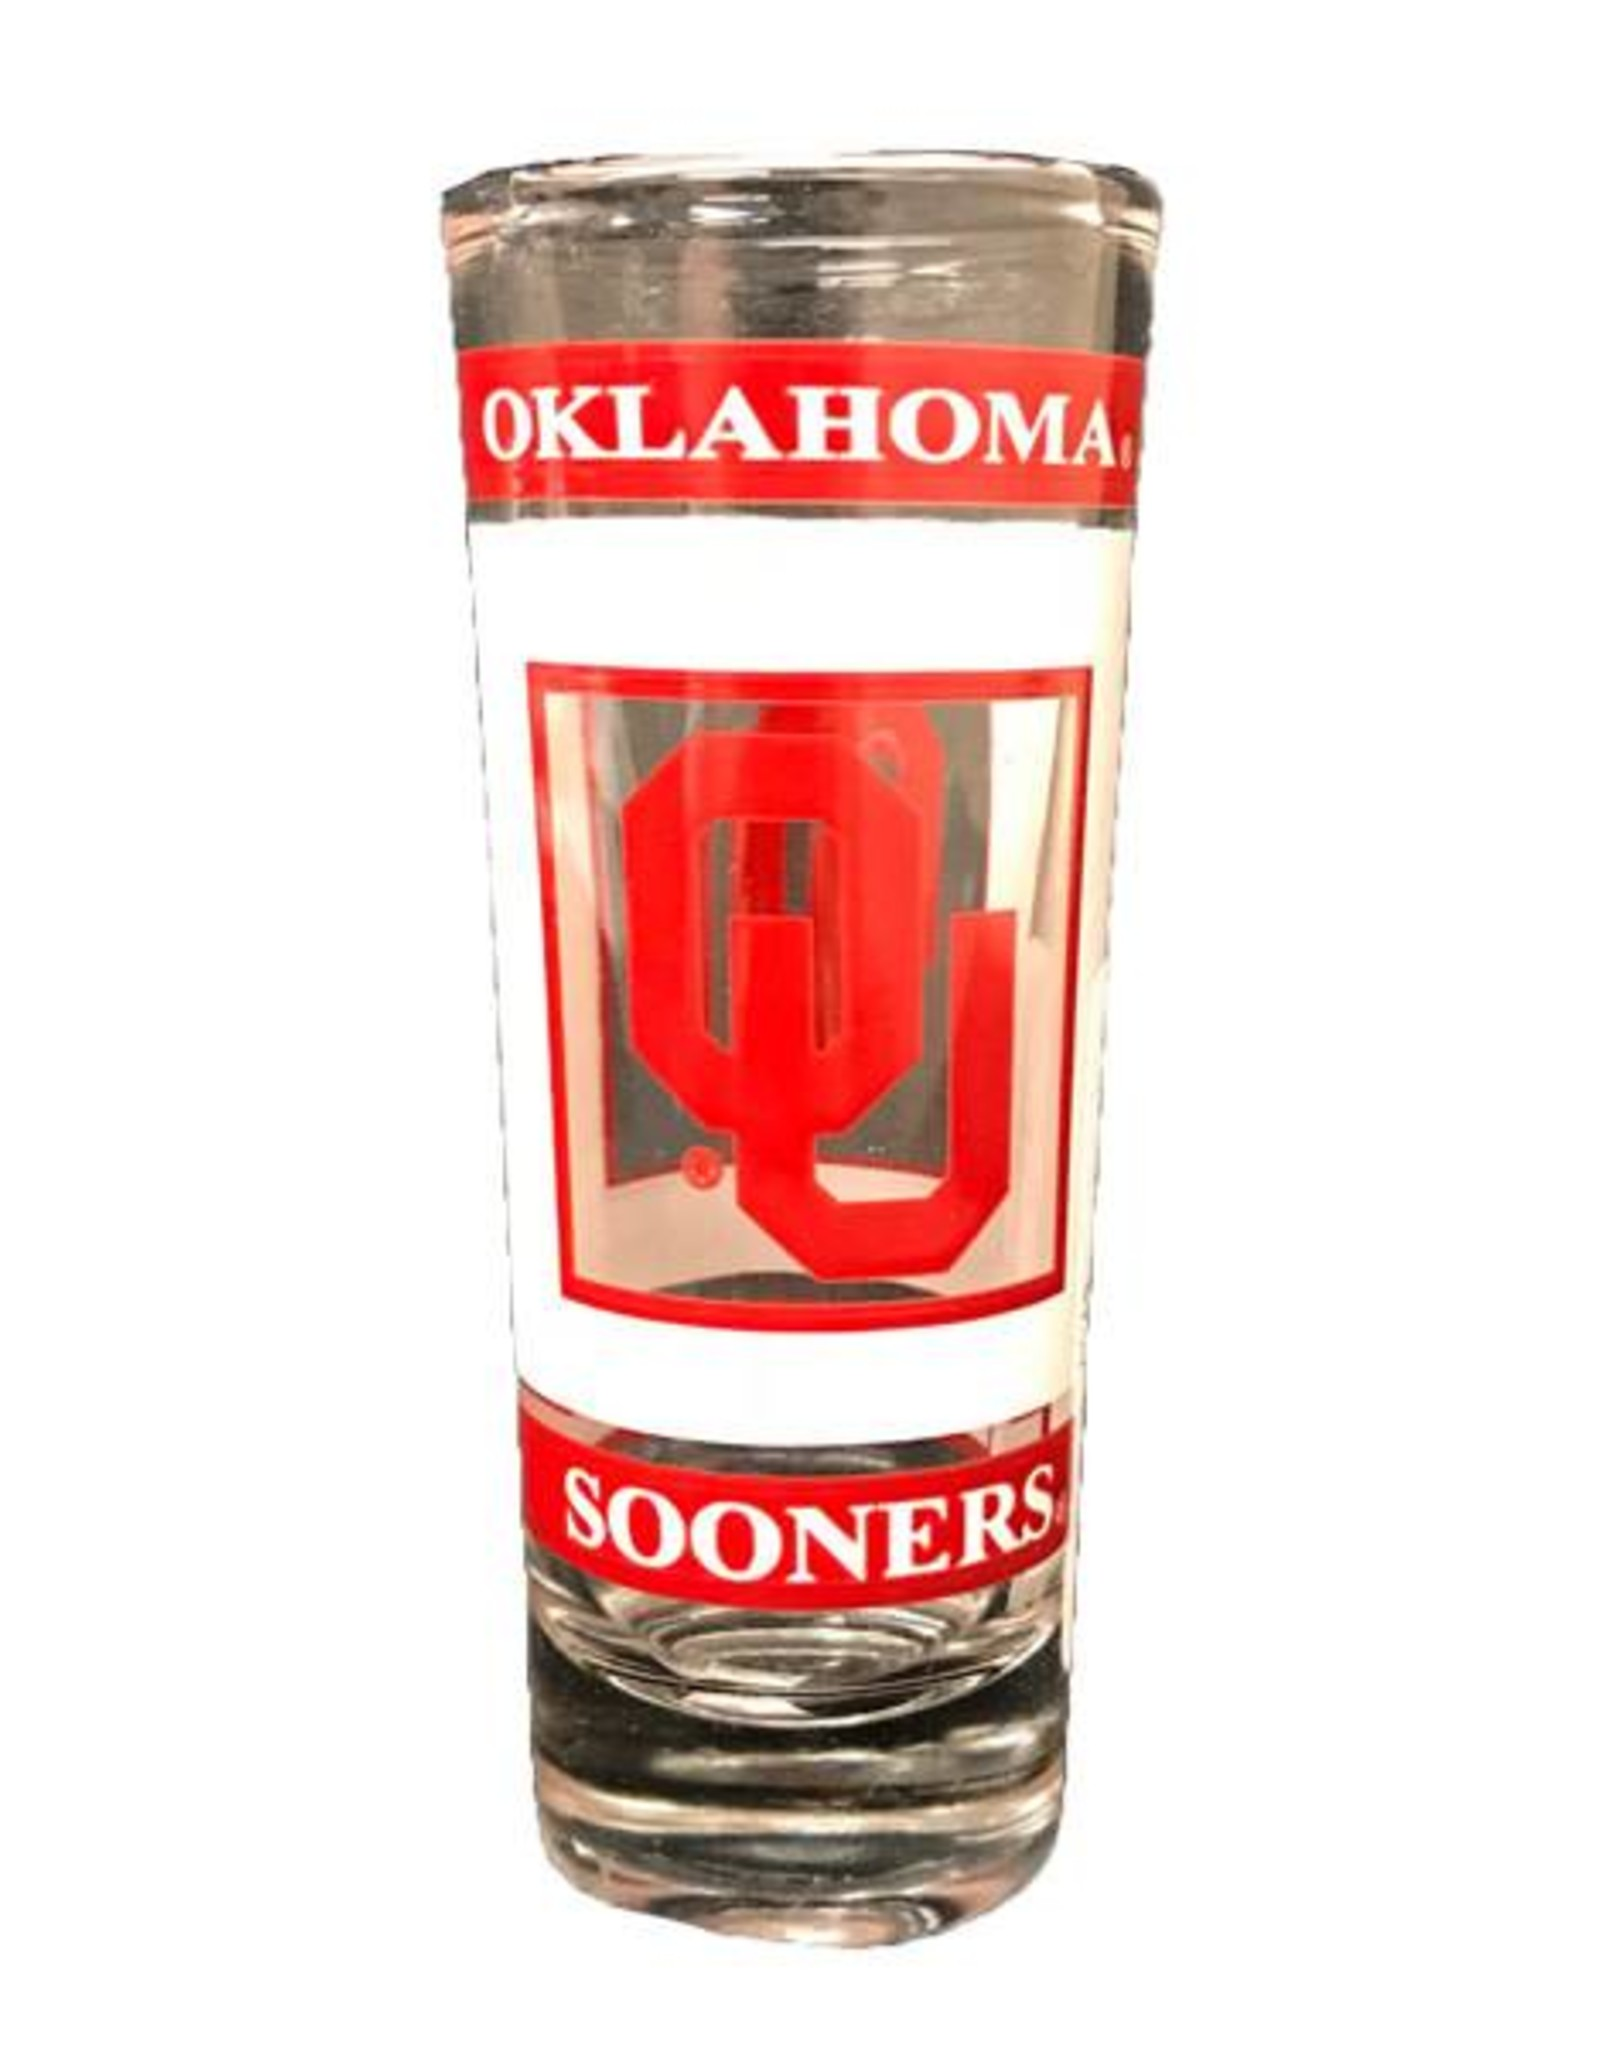 RFSJ 2 oz Oklahoma Sooners Shooter